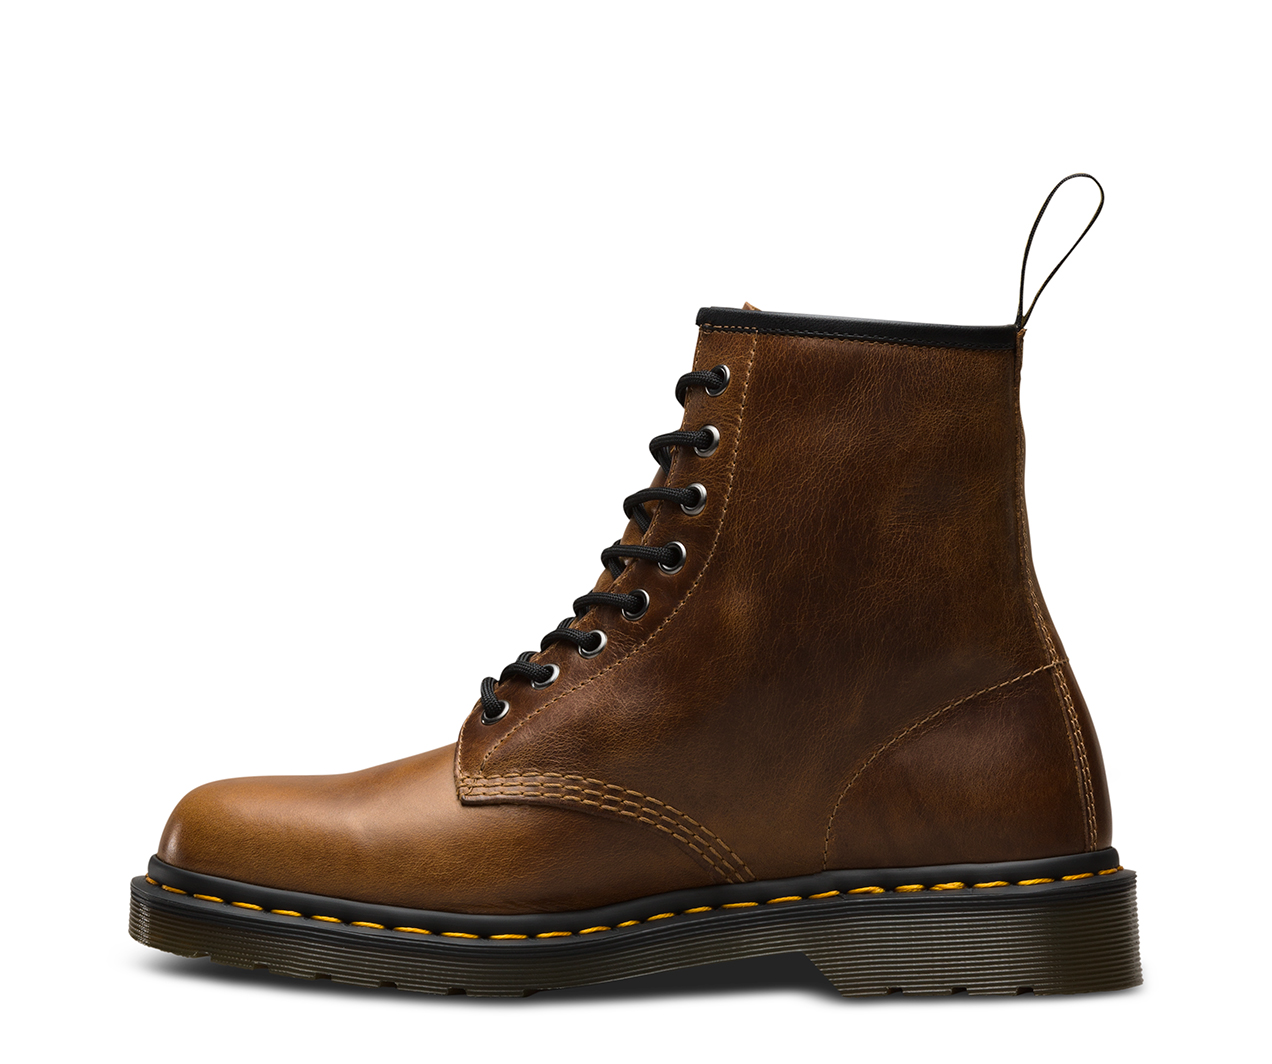 DR MARTENS 1460 Smooth in 2019 | Grunge| hipster | Dr ...